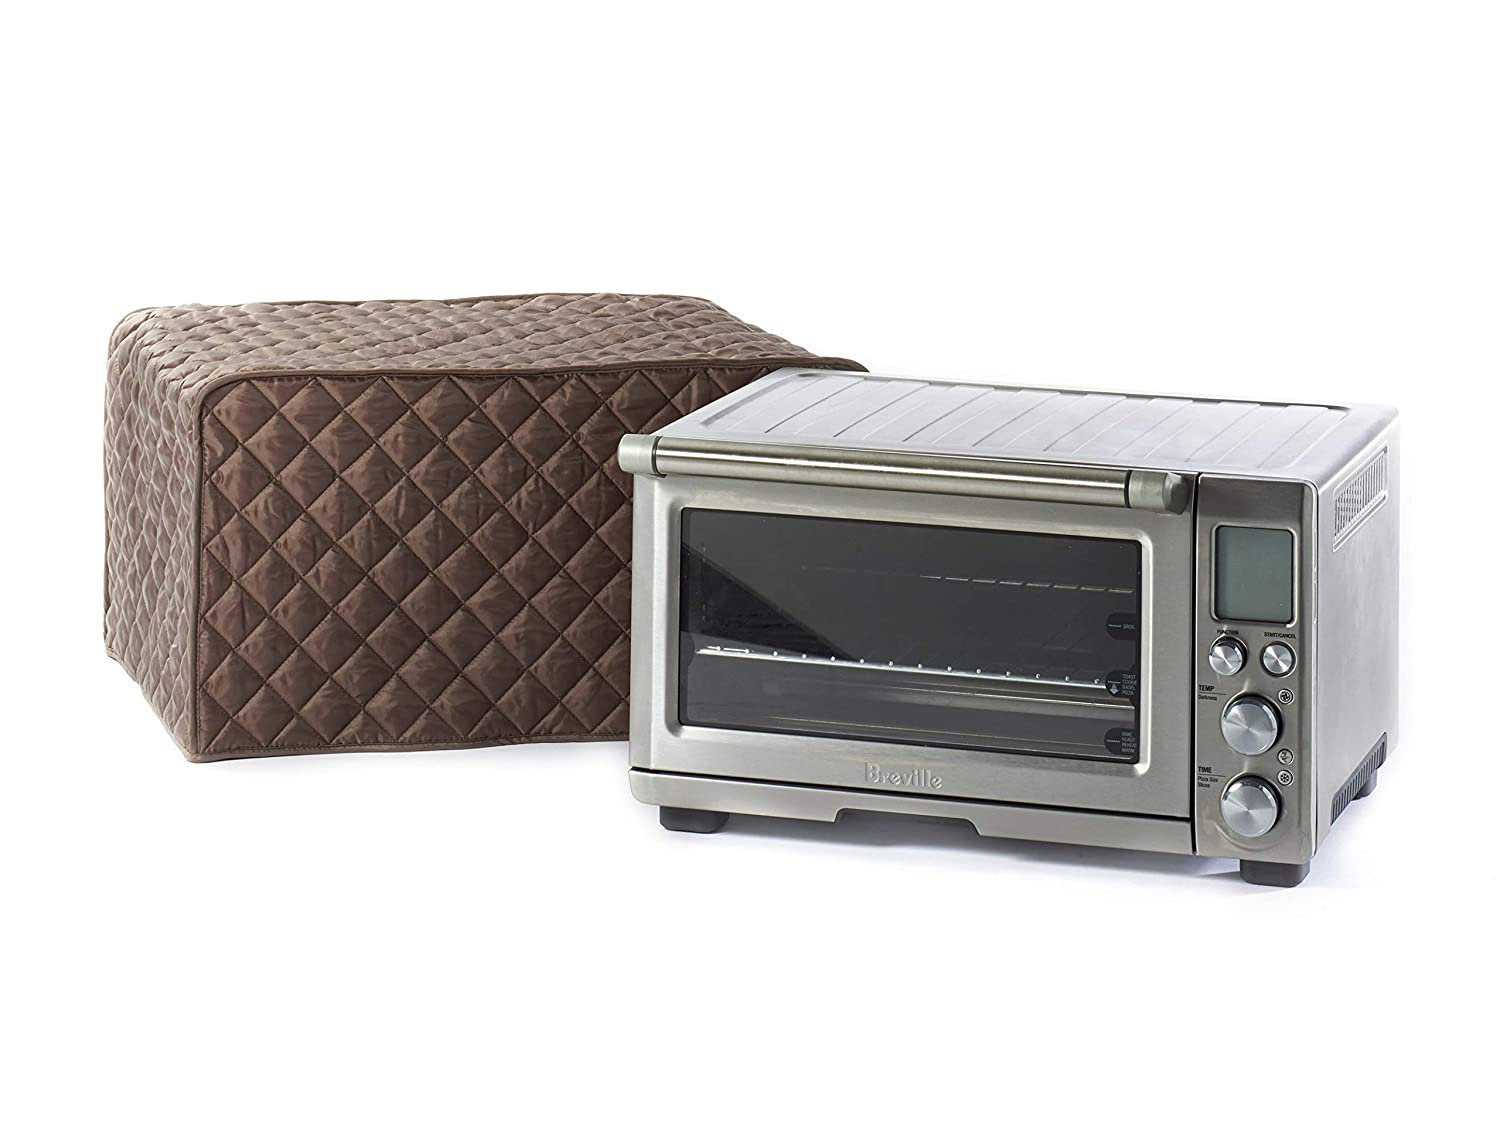 CoverMates – Toaster Oven Cover – 20W x 15D x 11H – Diamond Collection – 2 YR Warranty – Year Around Protection - Bronze